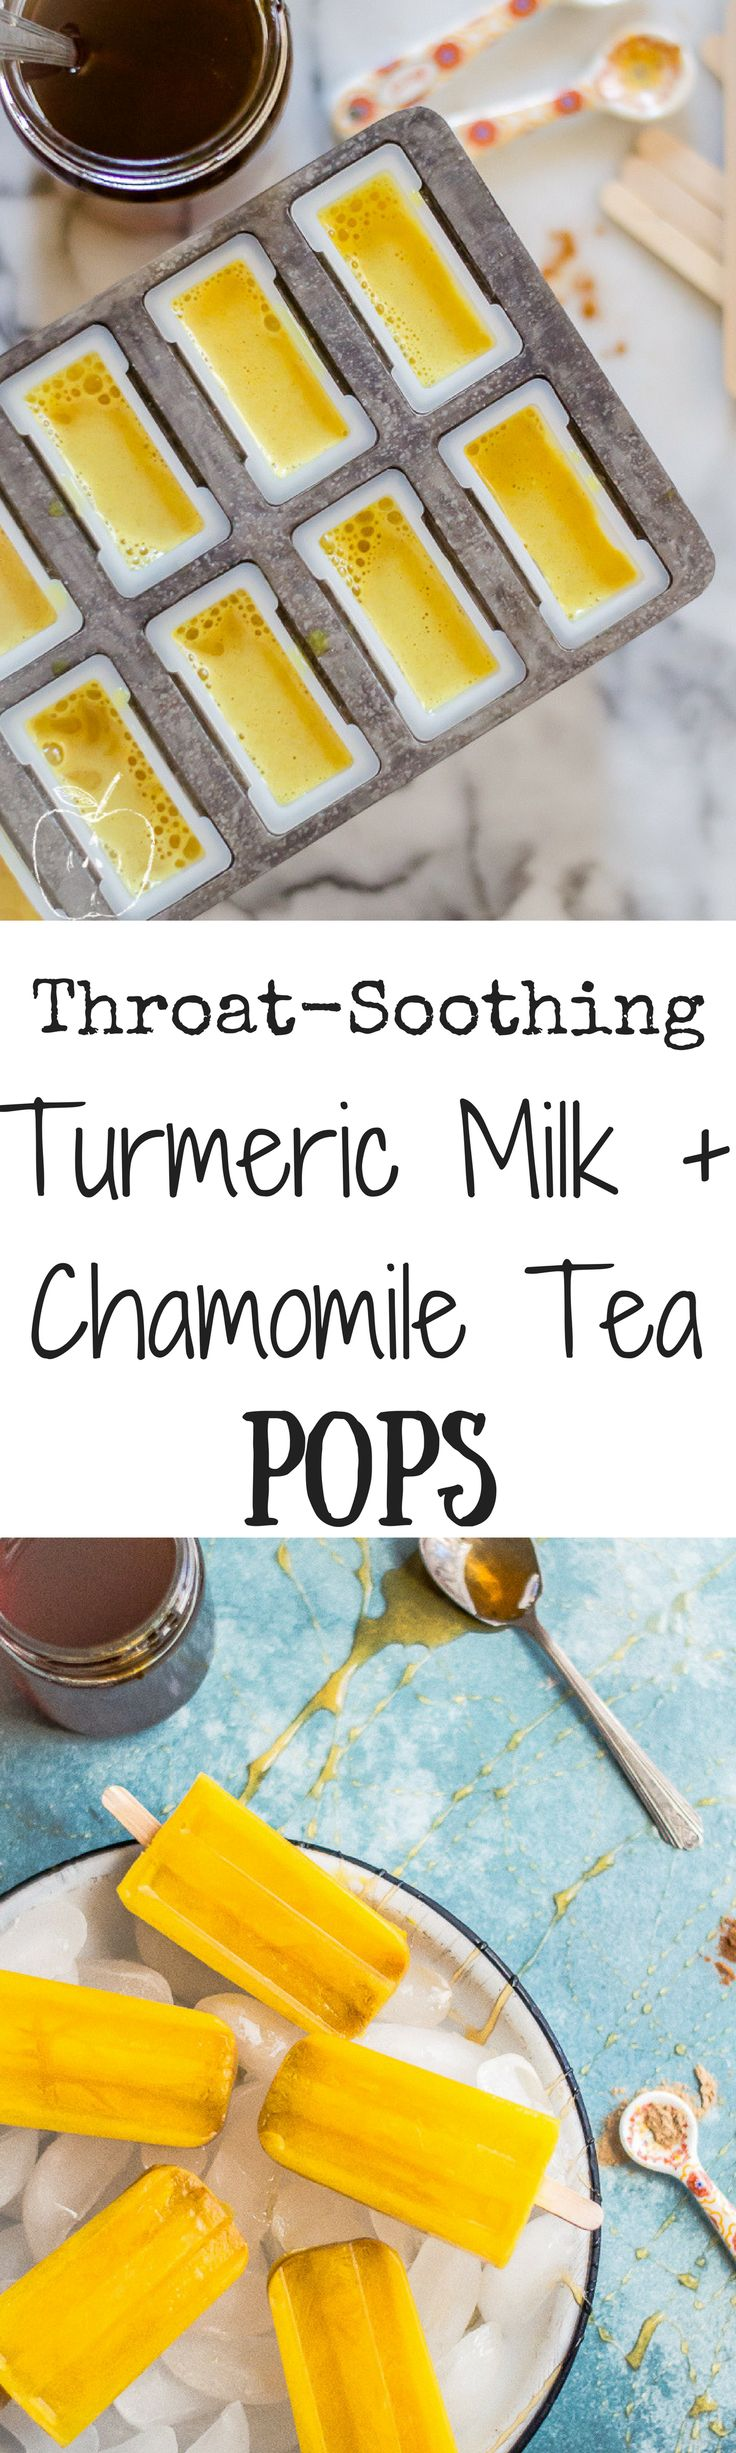 Throat-Soothing Turmeric Milk + Chamomile Tea Pops are the perfect medicine to make in your own kitchen for when a cold or scratchy throat has you or a little one feeling less than awesome! Paleo, dairy-free, gluten free